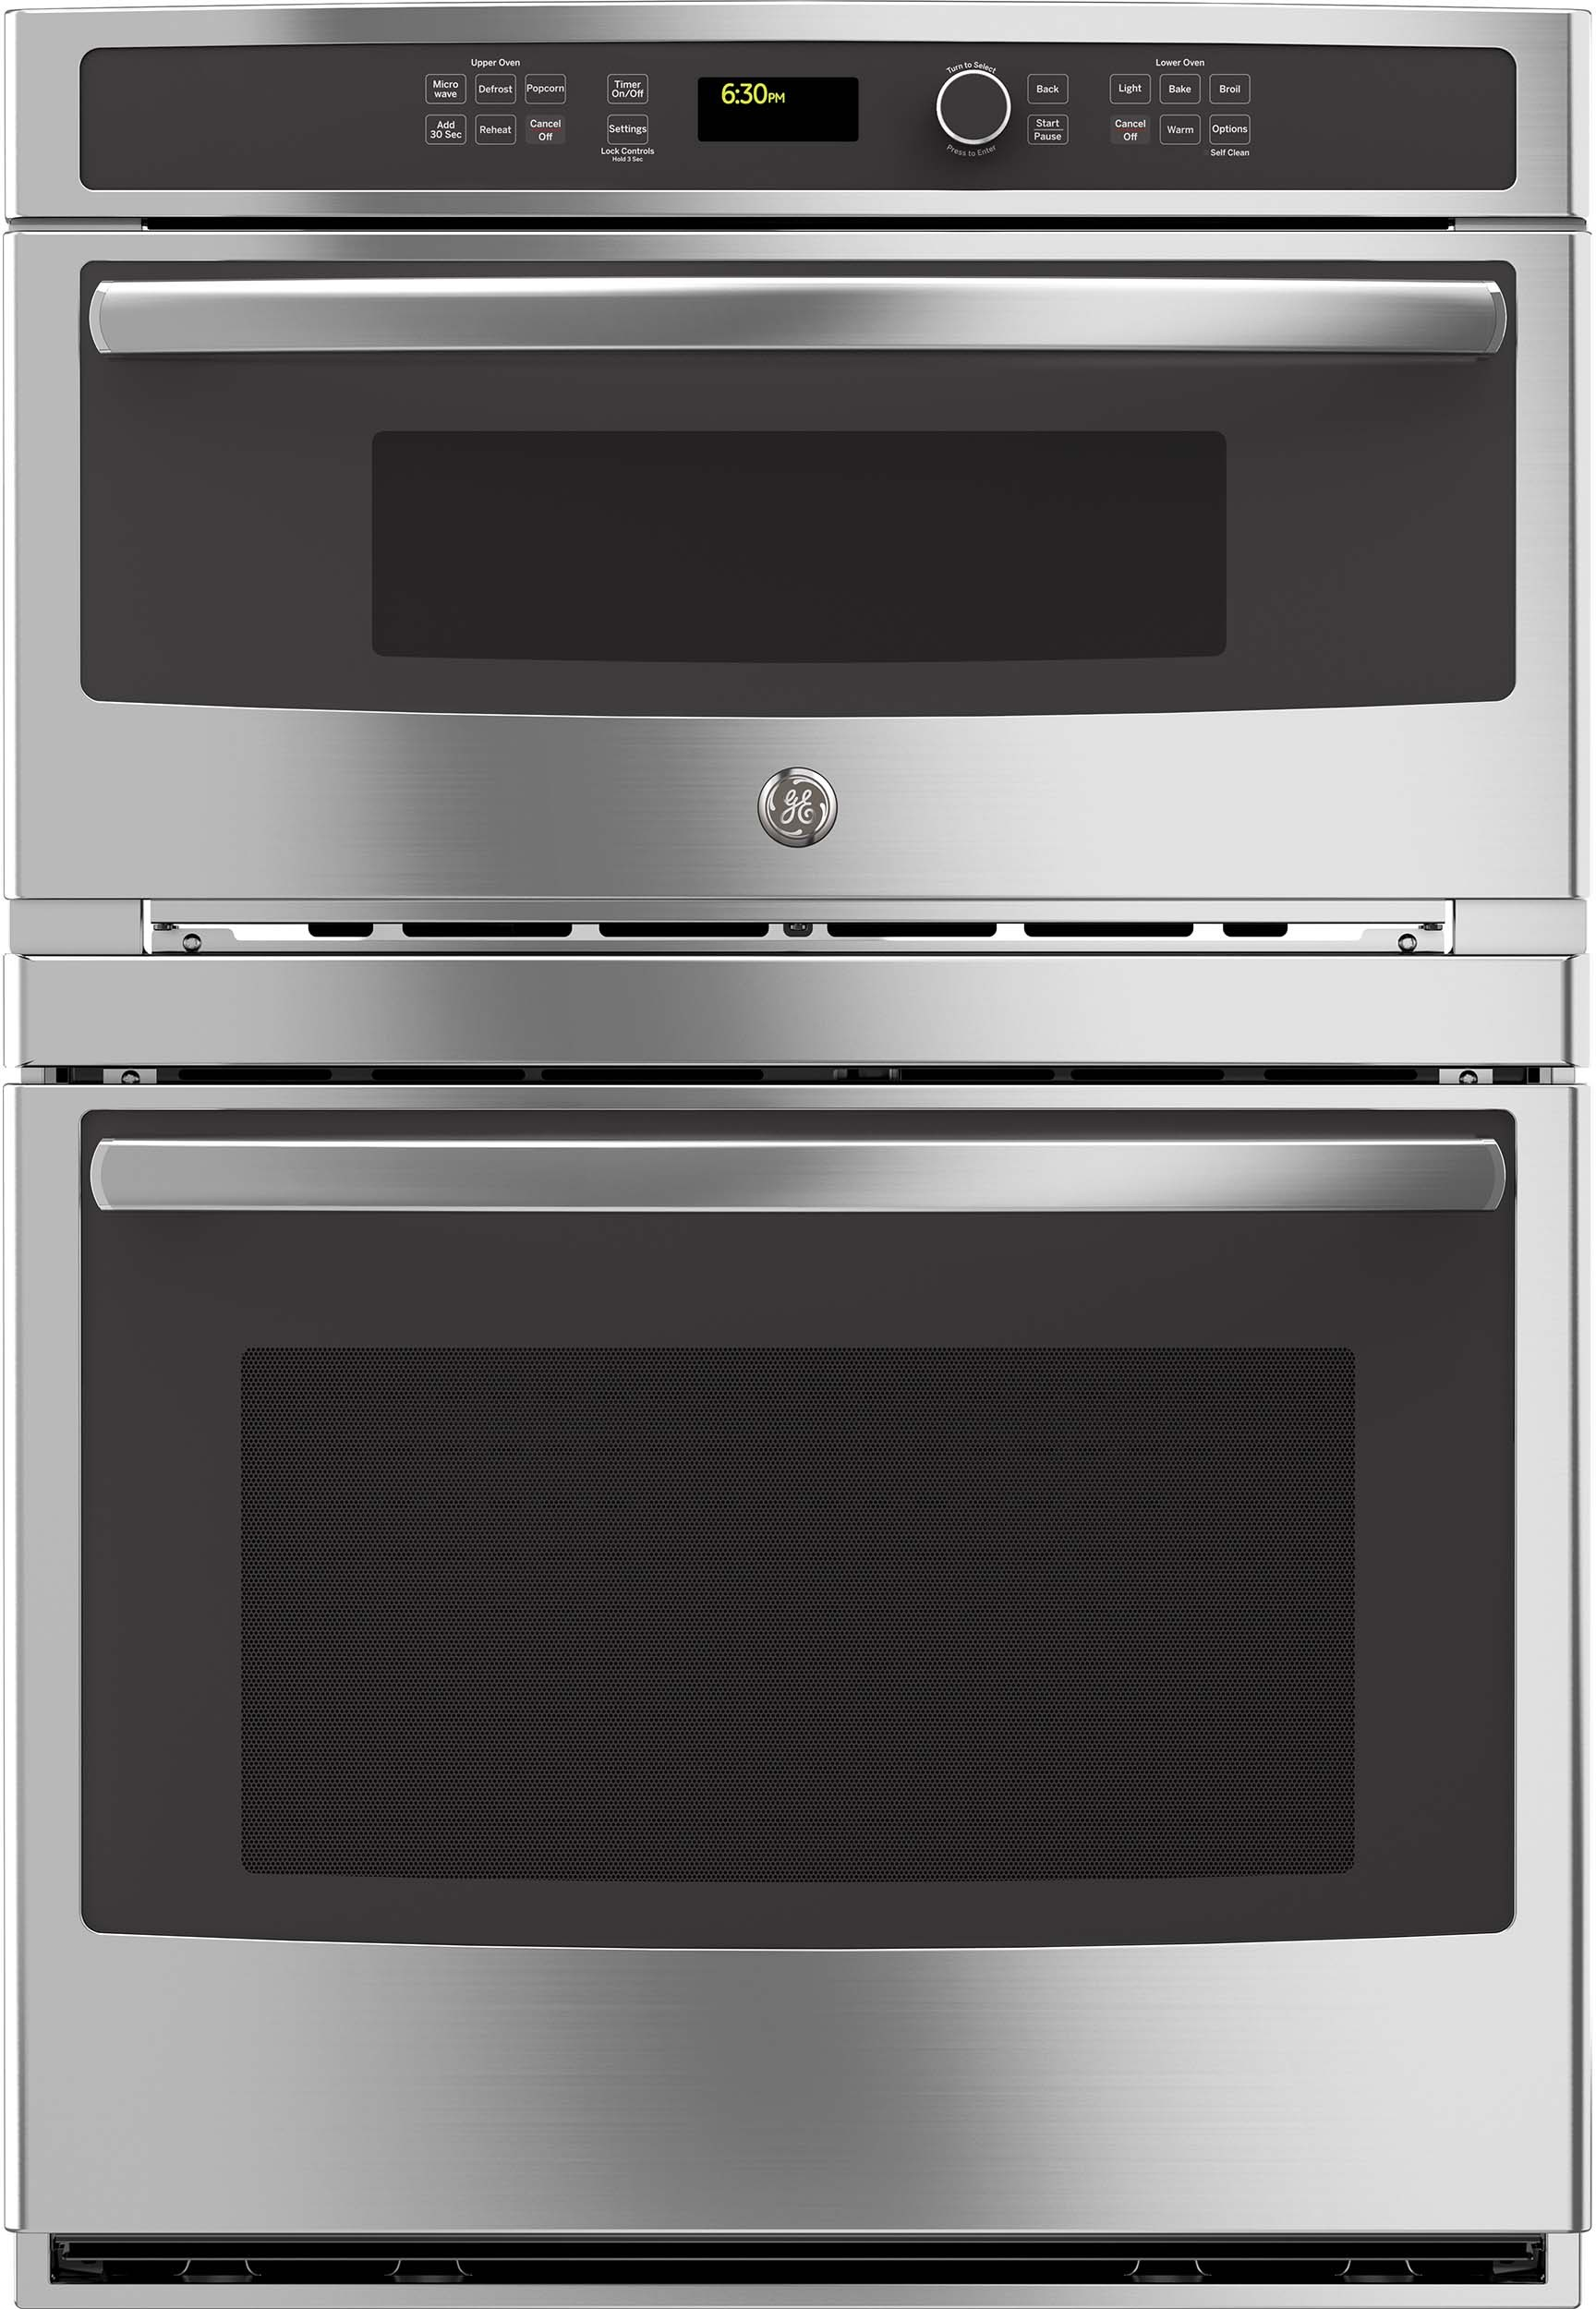 24 inch built in oven microwave combo - 24 Inch Built In Oven Microwave Combo 4